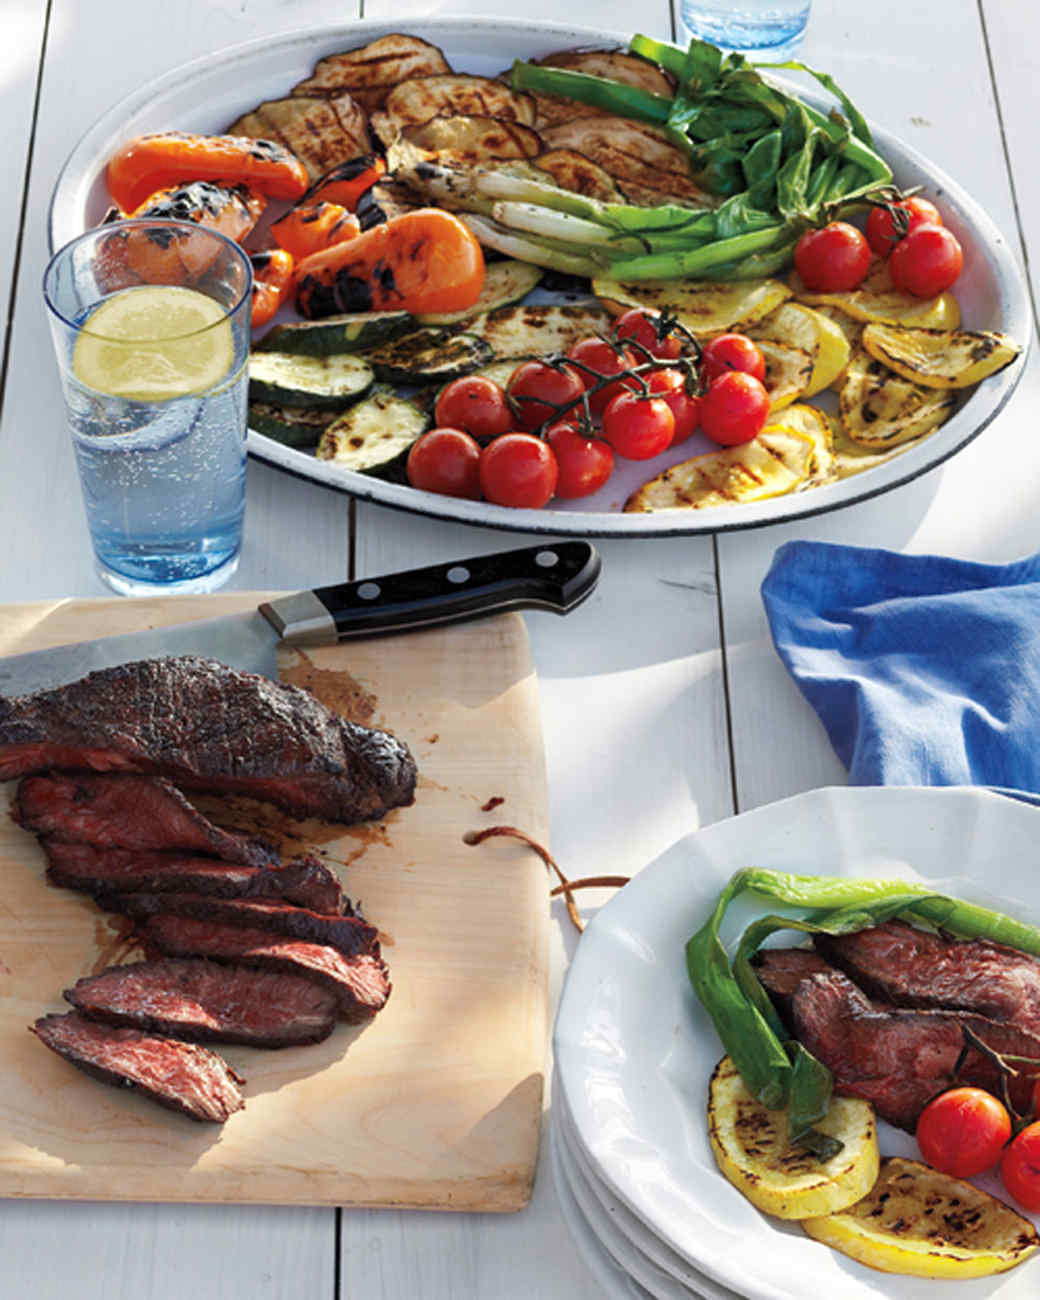 med105744_0710_steak_dinner.jpg